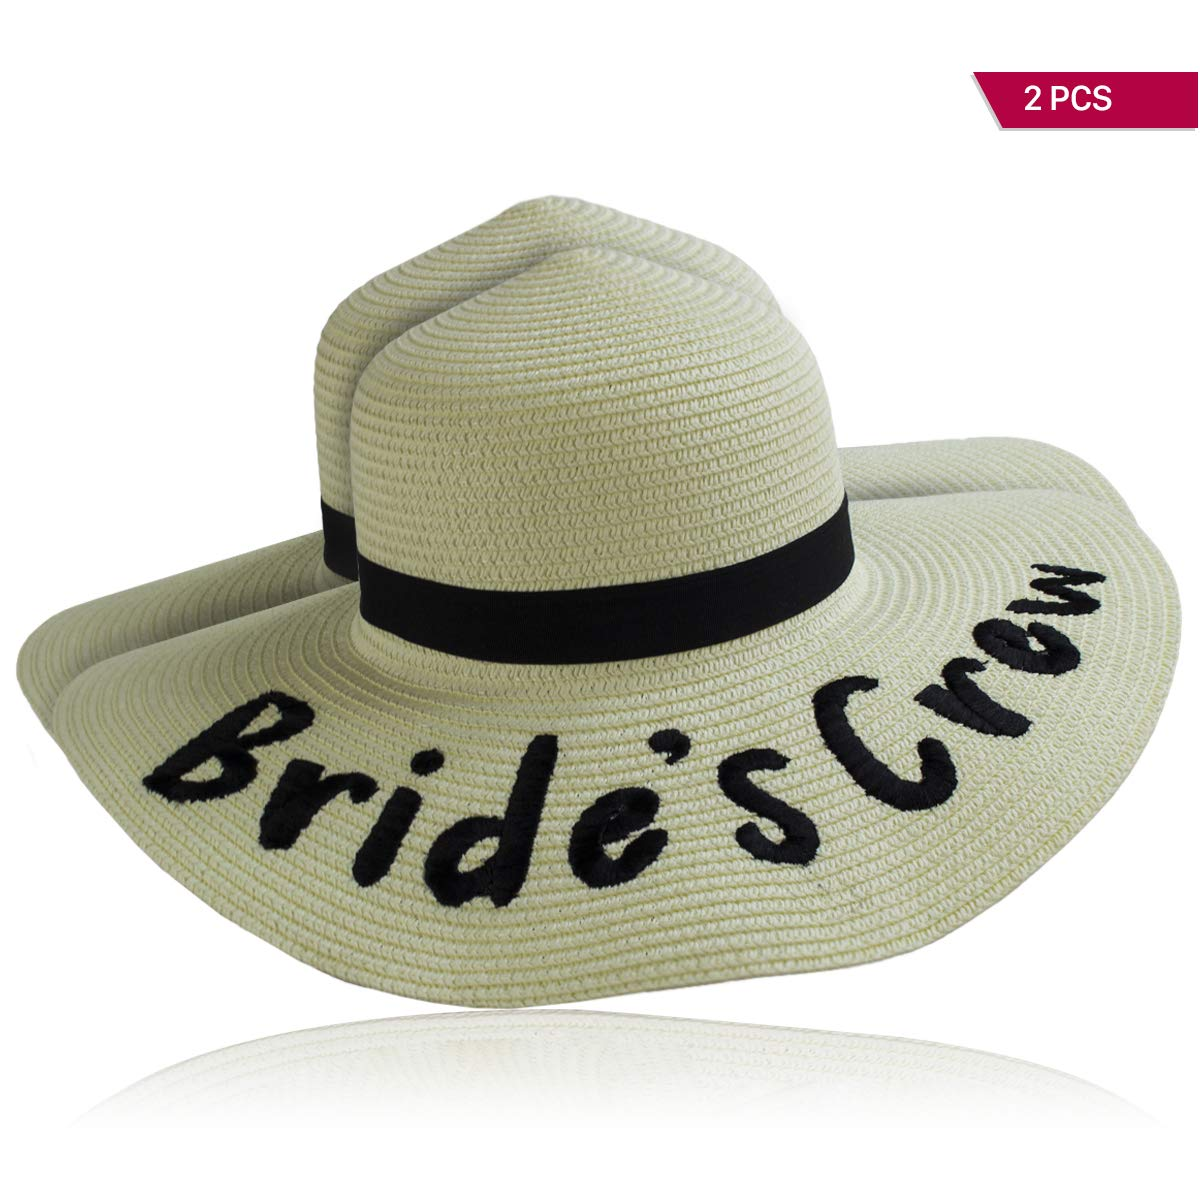 Amazon.com  Bride s Crew! Bachelorette Floppy Sun Hats e6c84f69807